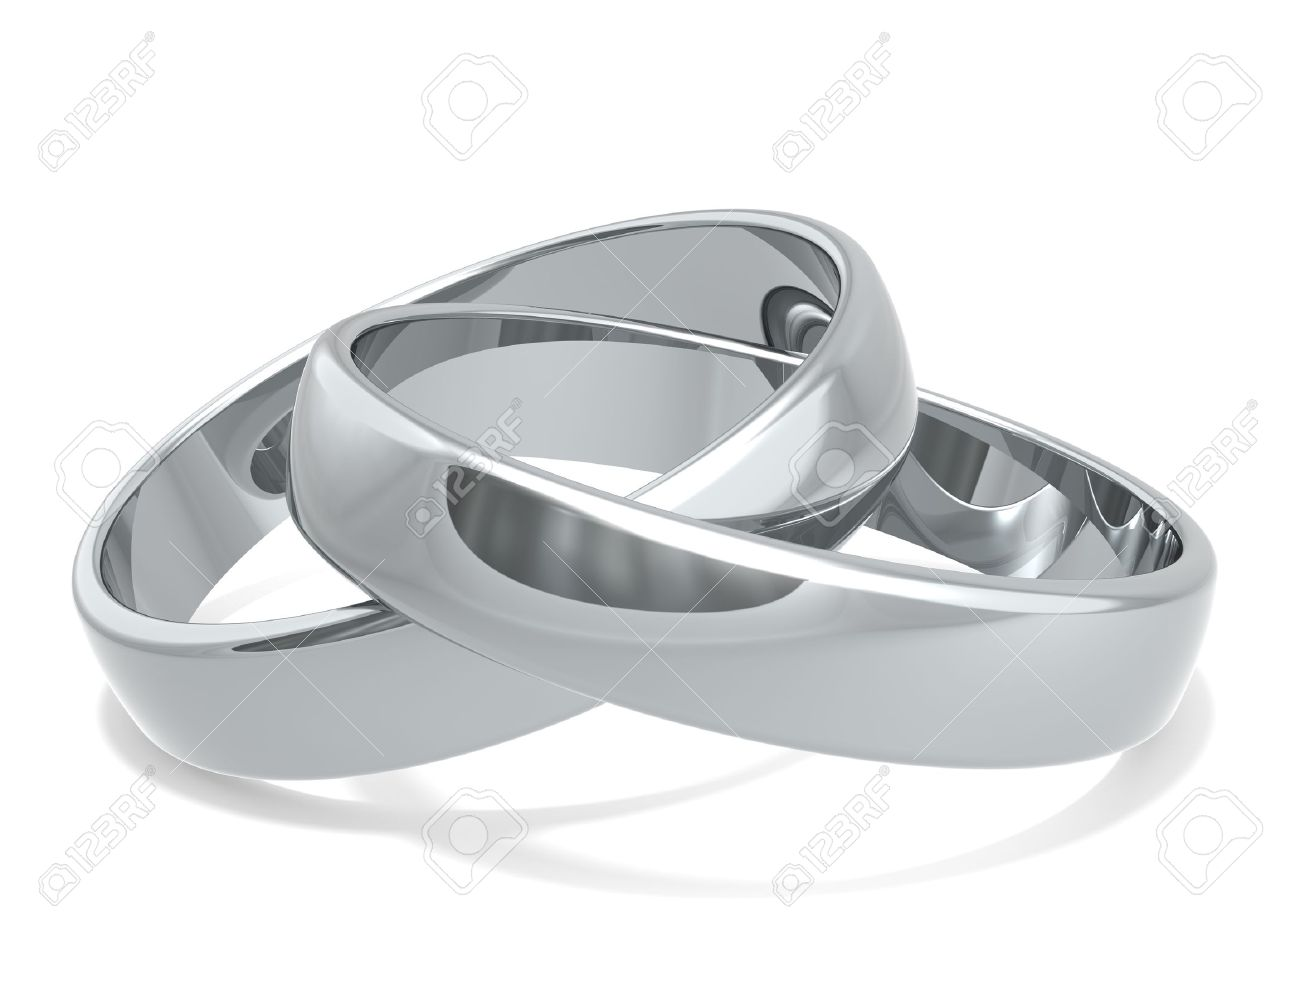 wedding rings of platinum x 2 stock photo picture and royalty